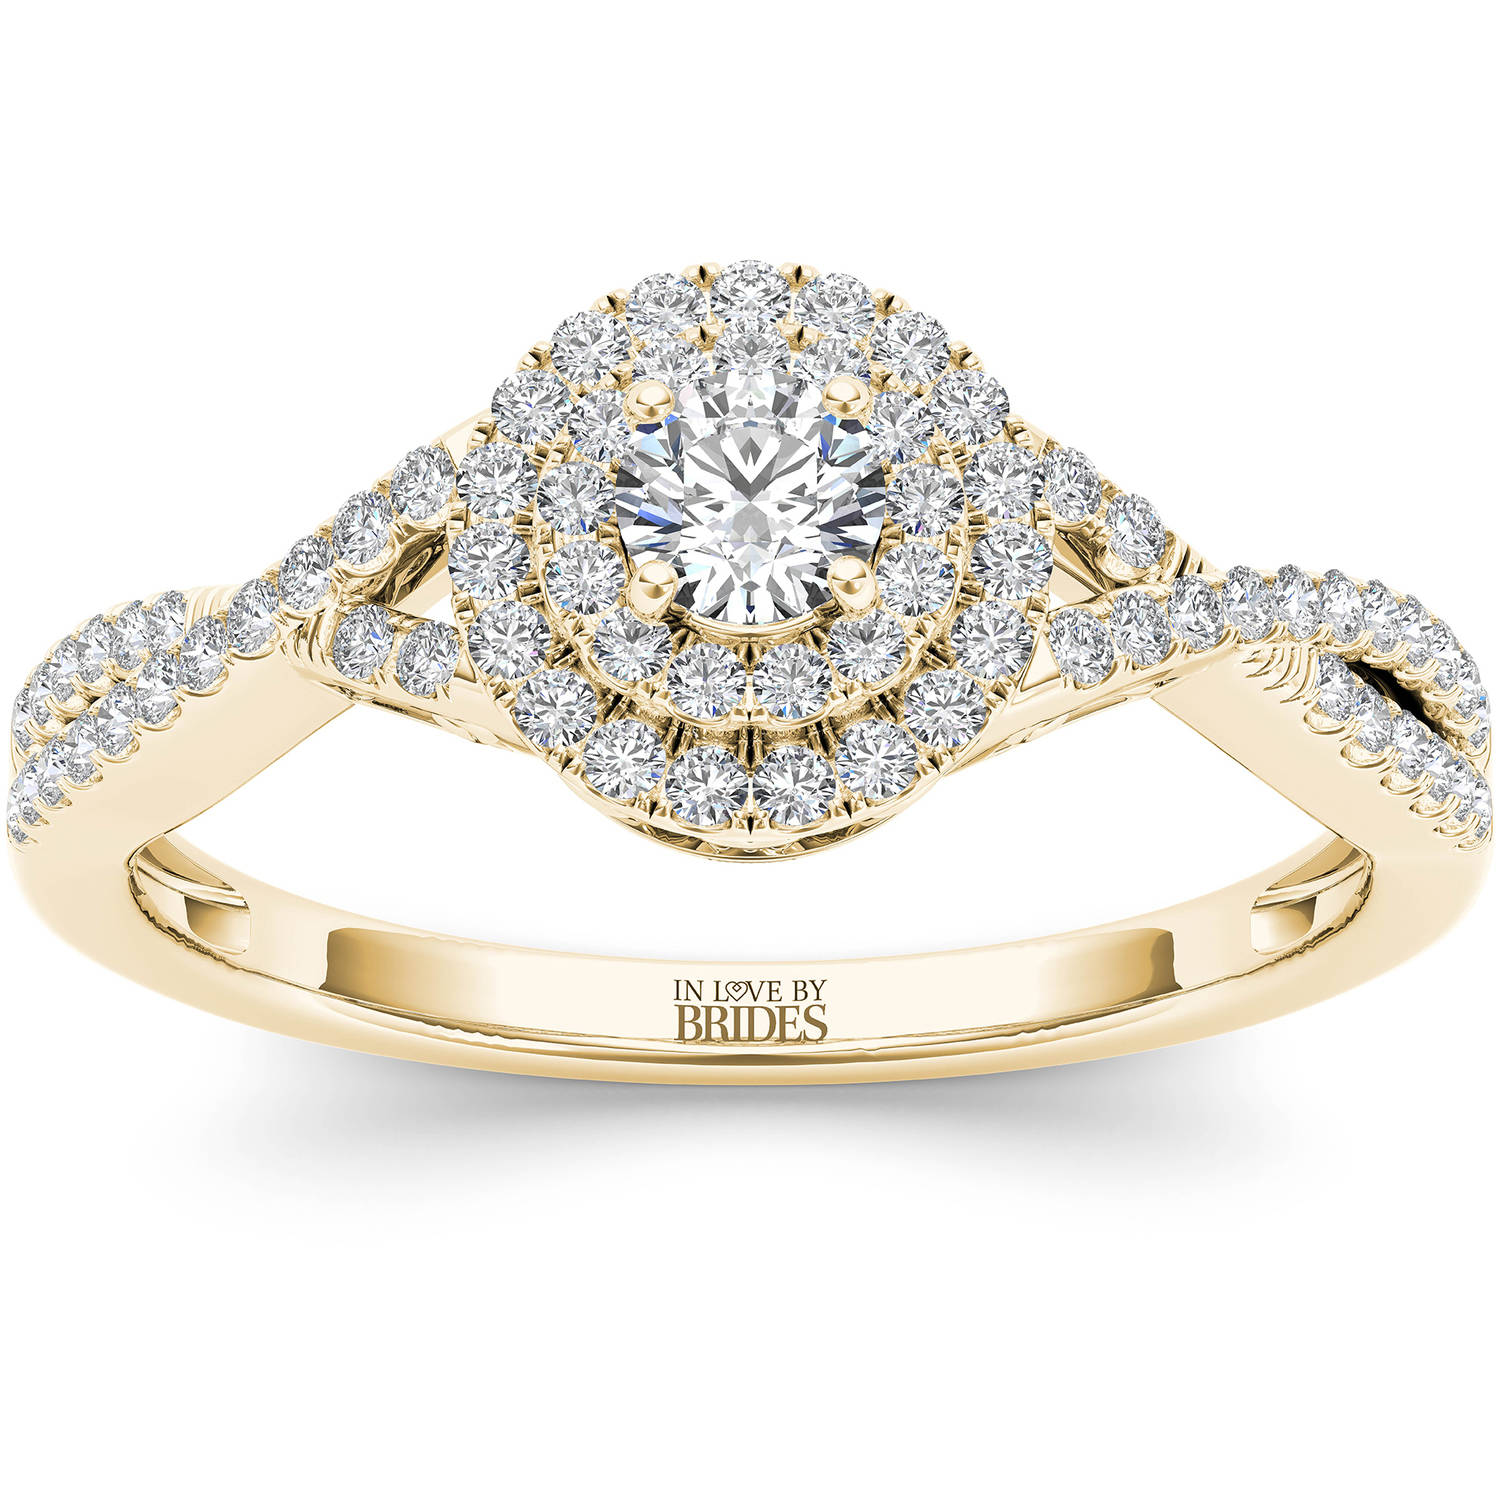 IN LOVE BY BRIDES 3/8 Carat T.W. Certified Diamond Twisted Shank Double Halo 14kt Yellow Gold Engagement Ring